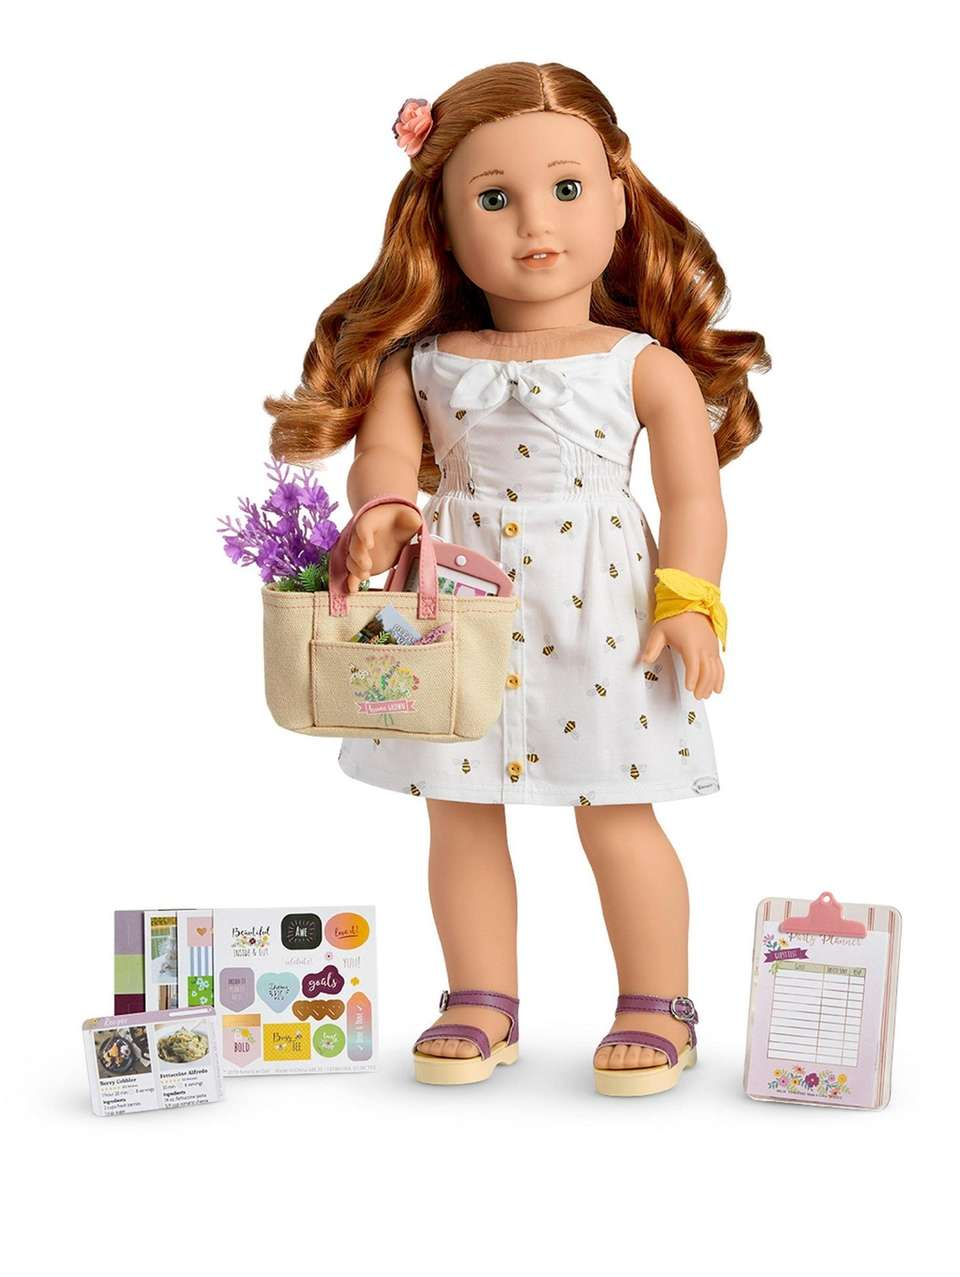 Blaire Wilson, American Girl's 2019 Girl of the